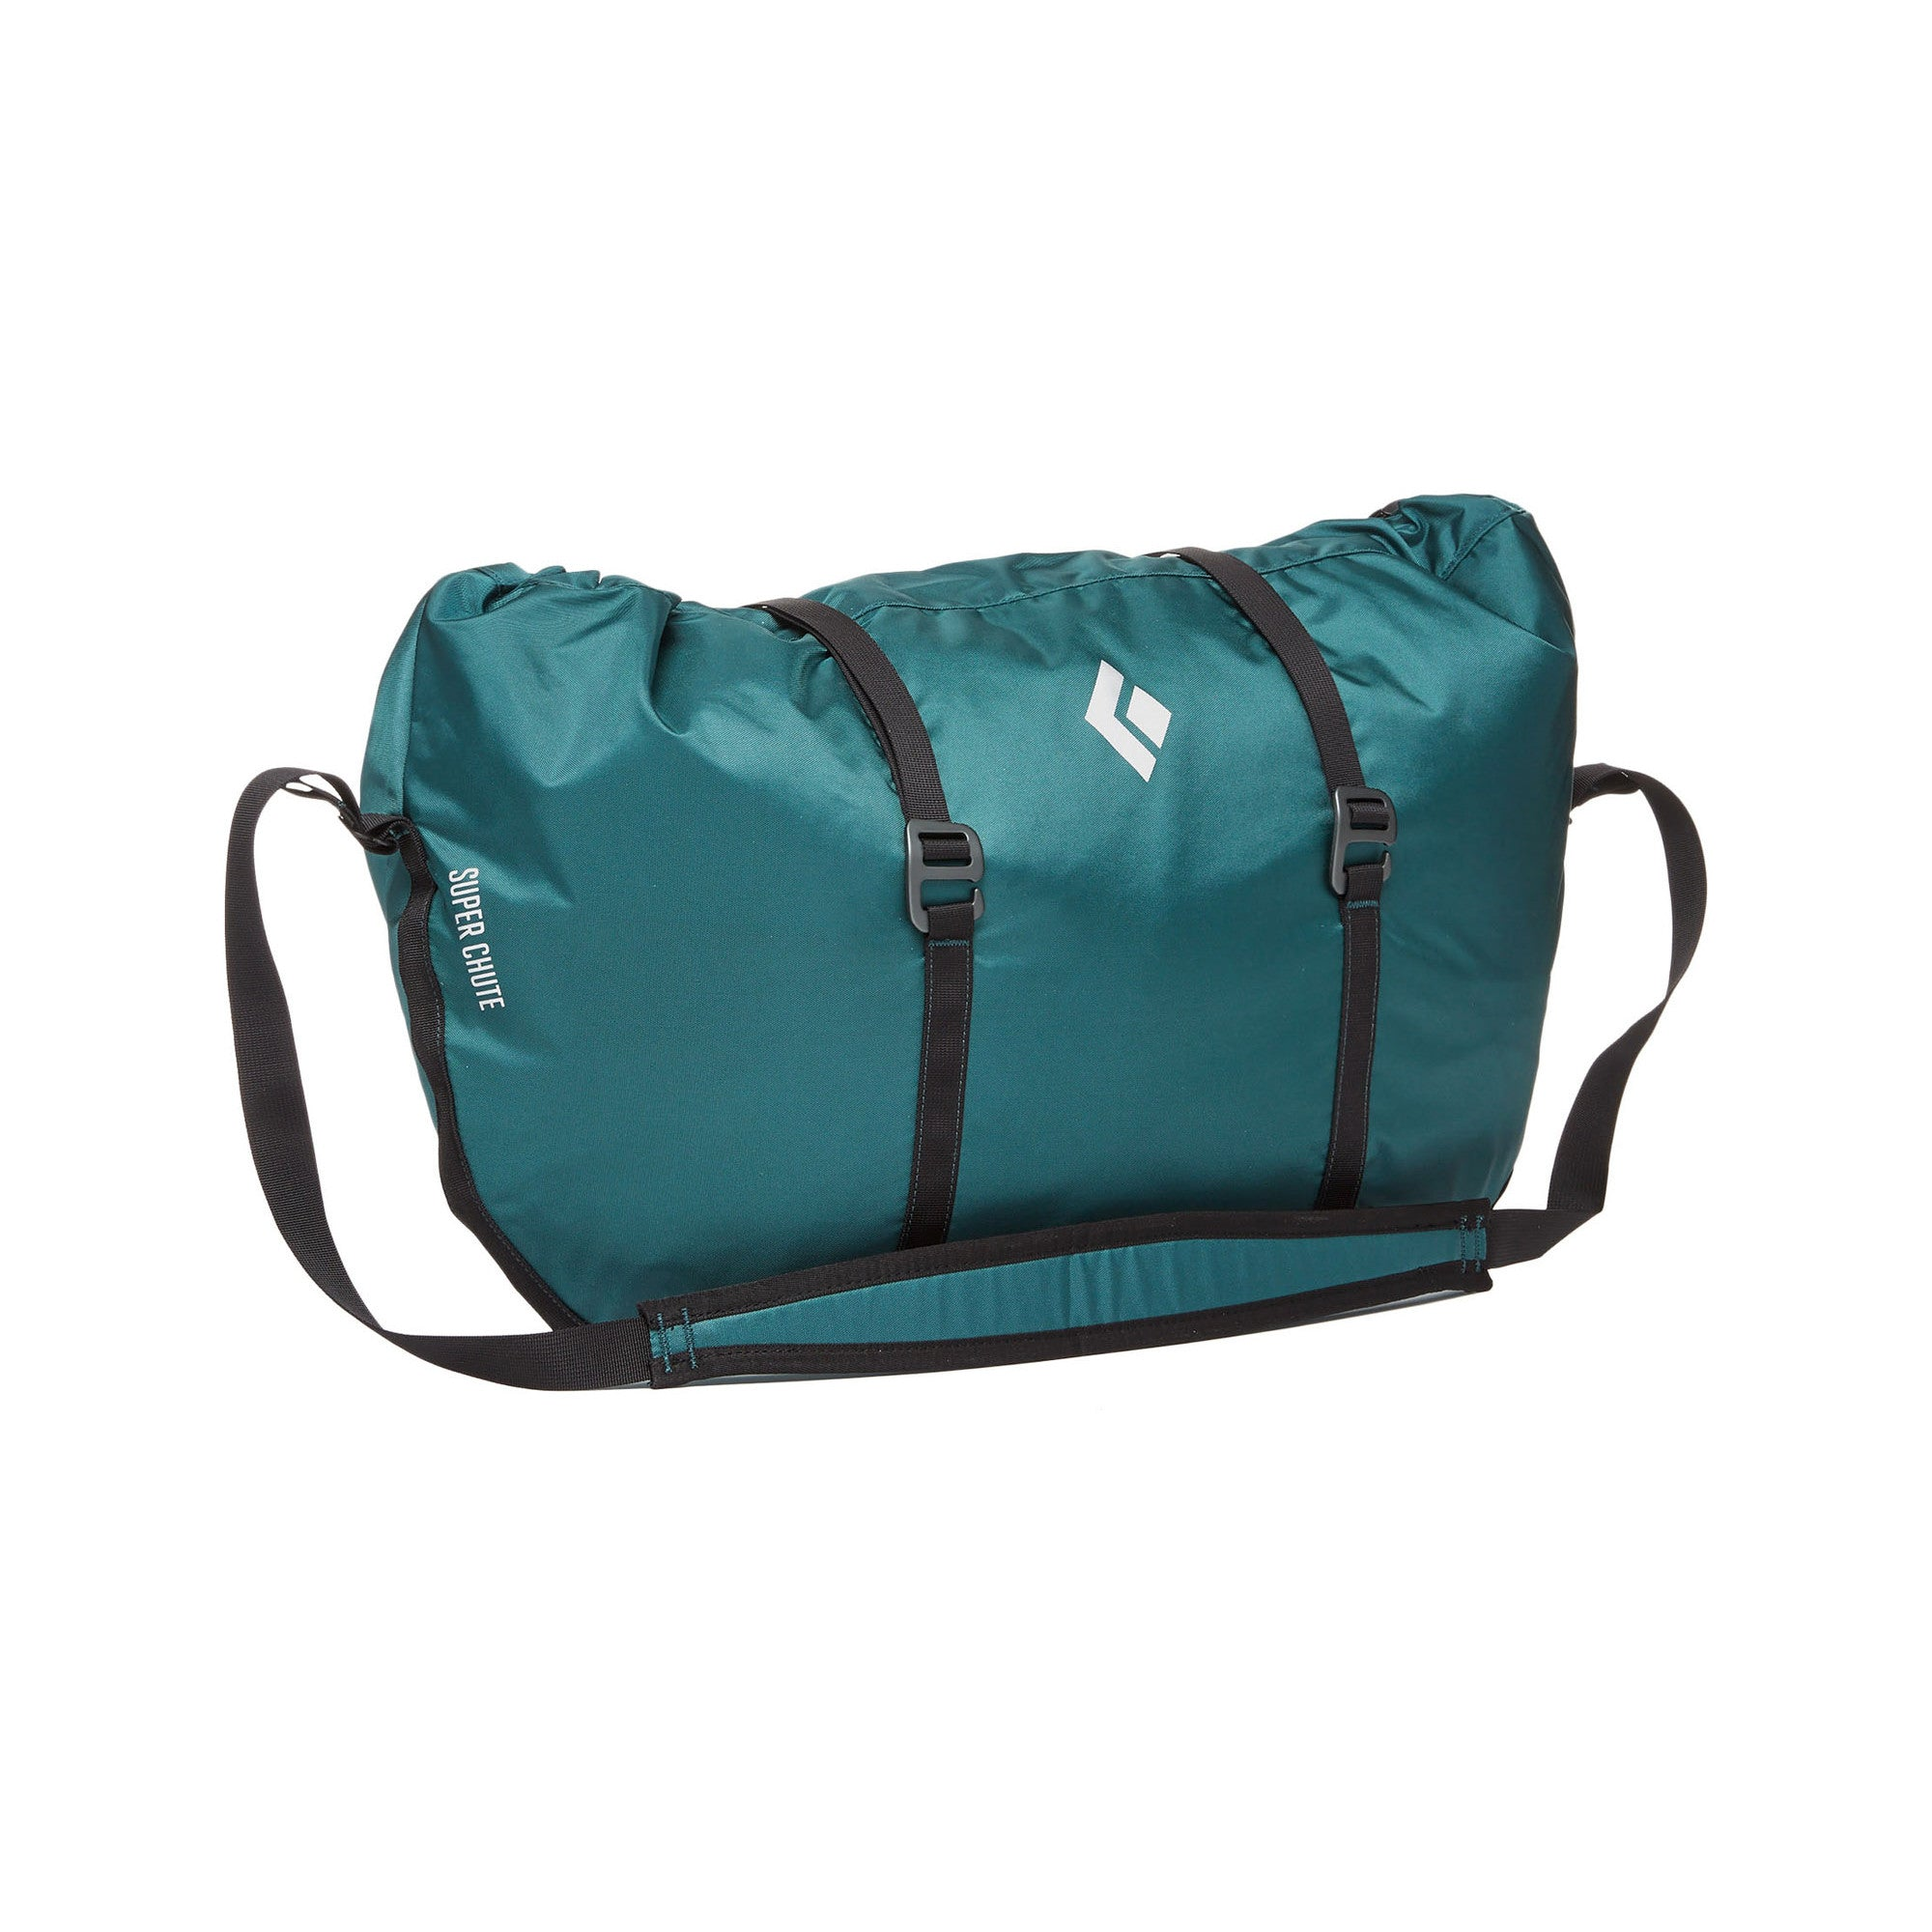 Black Diamond Super Chute climbing rope bag, shown closed in Adriatic colour